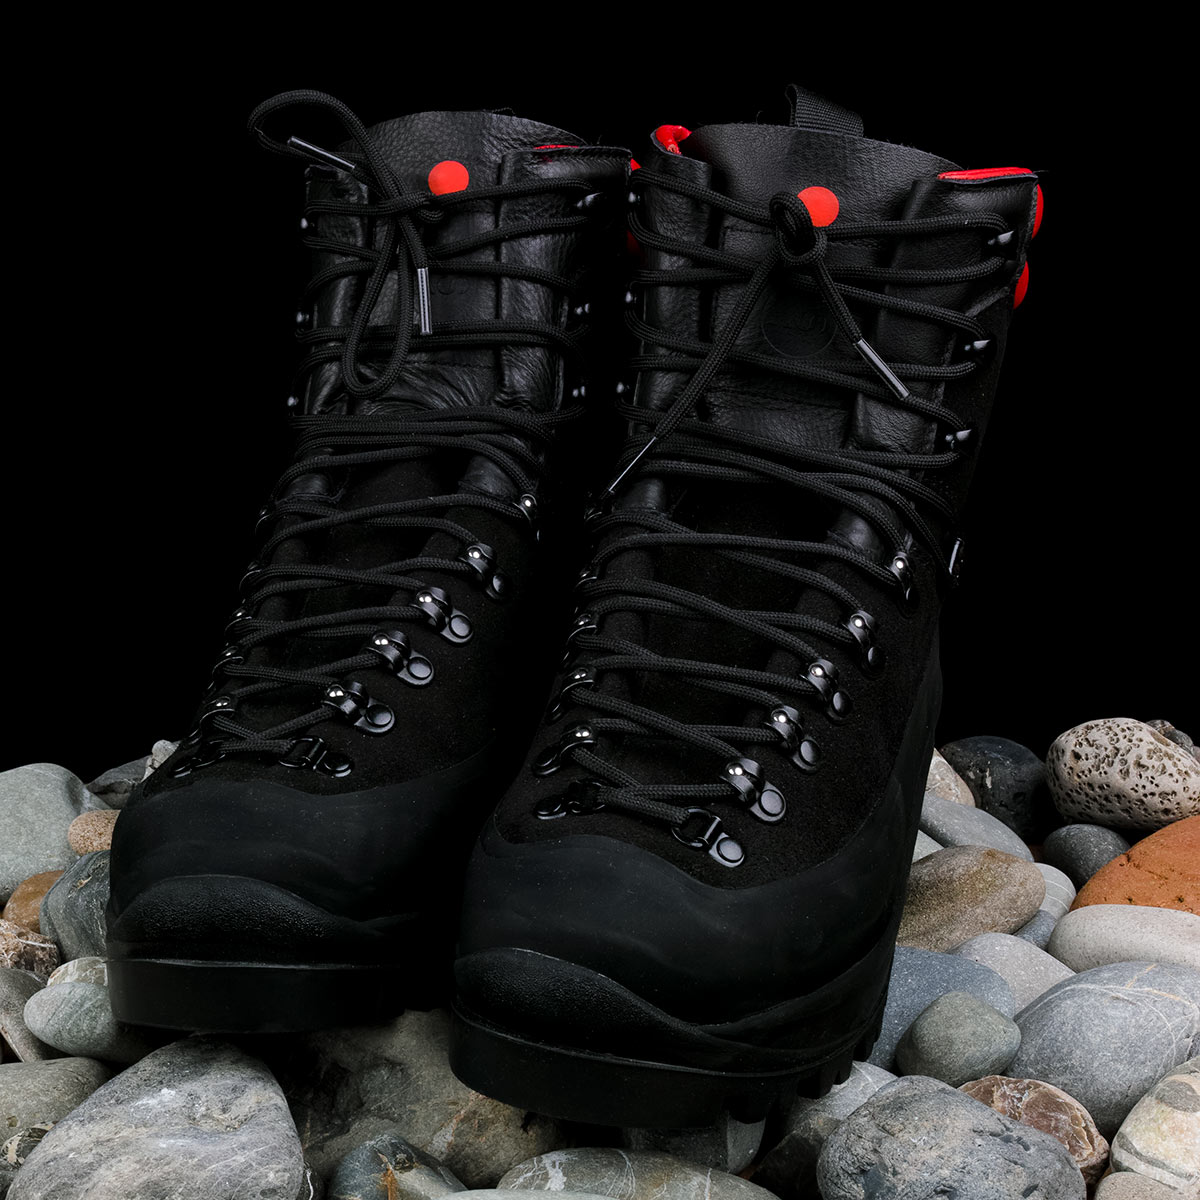 THE ROCK - BOOTS FOR OUTDOOR